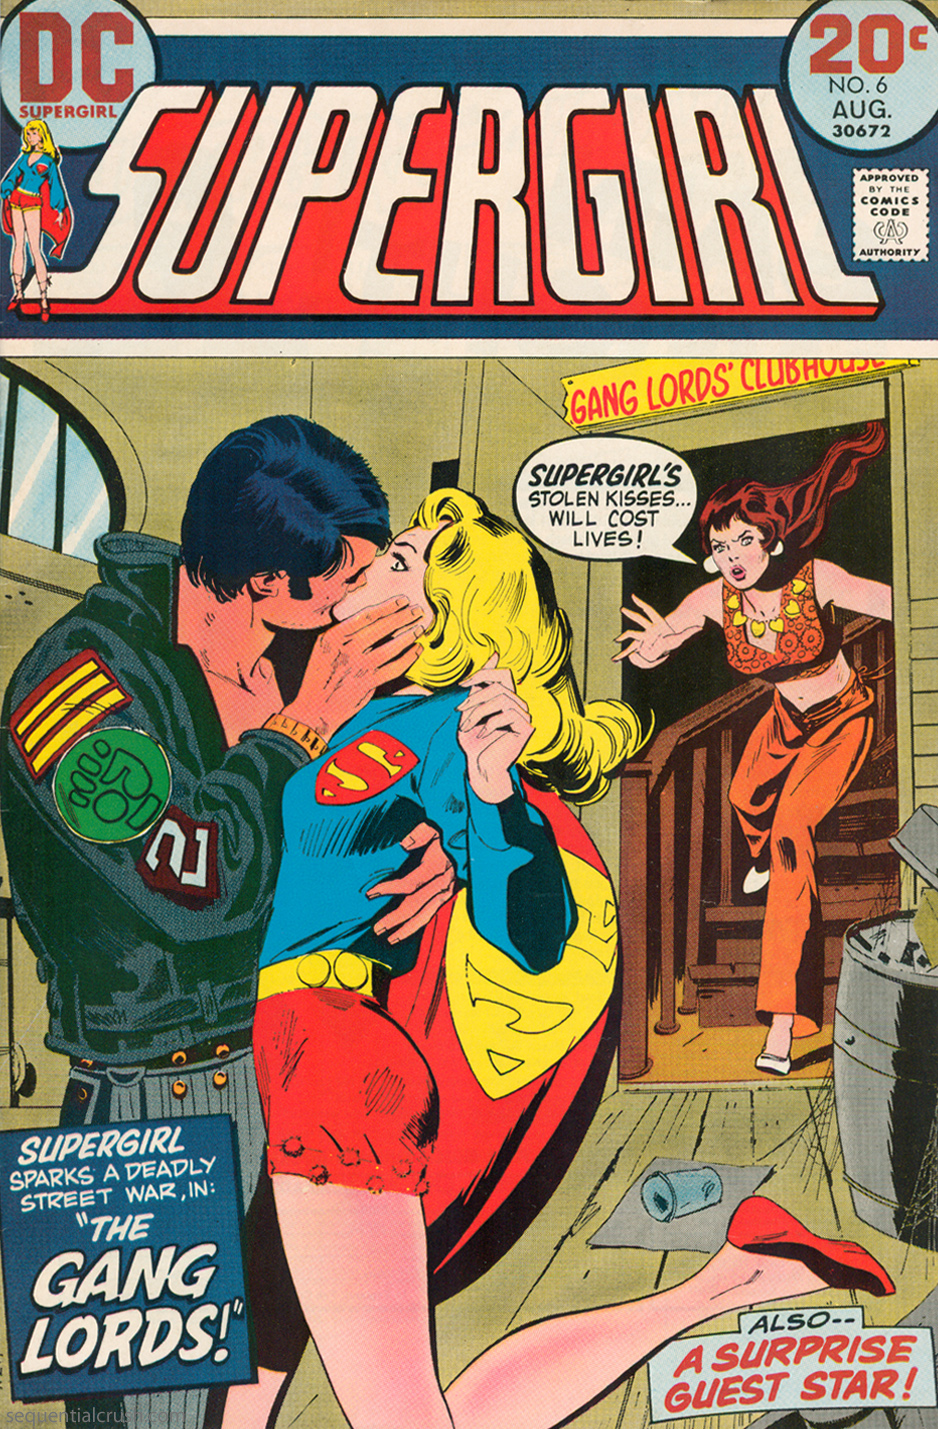 Supergirl  #6 (August 1973) Pencils and Inks: Bob Oksner